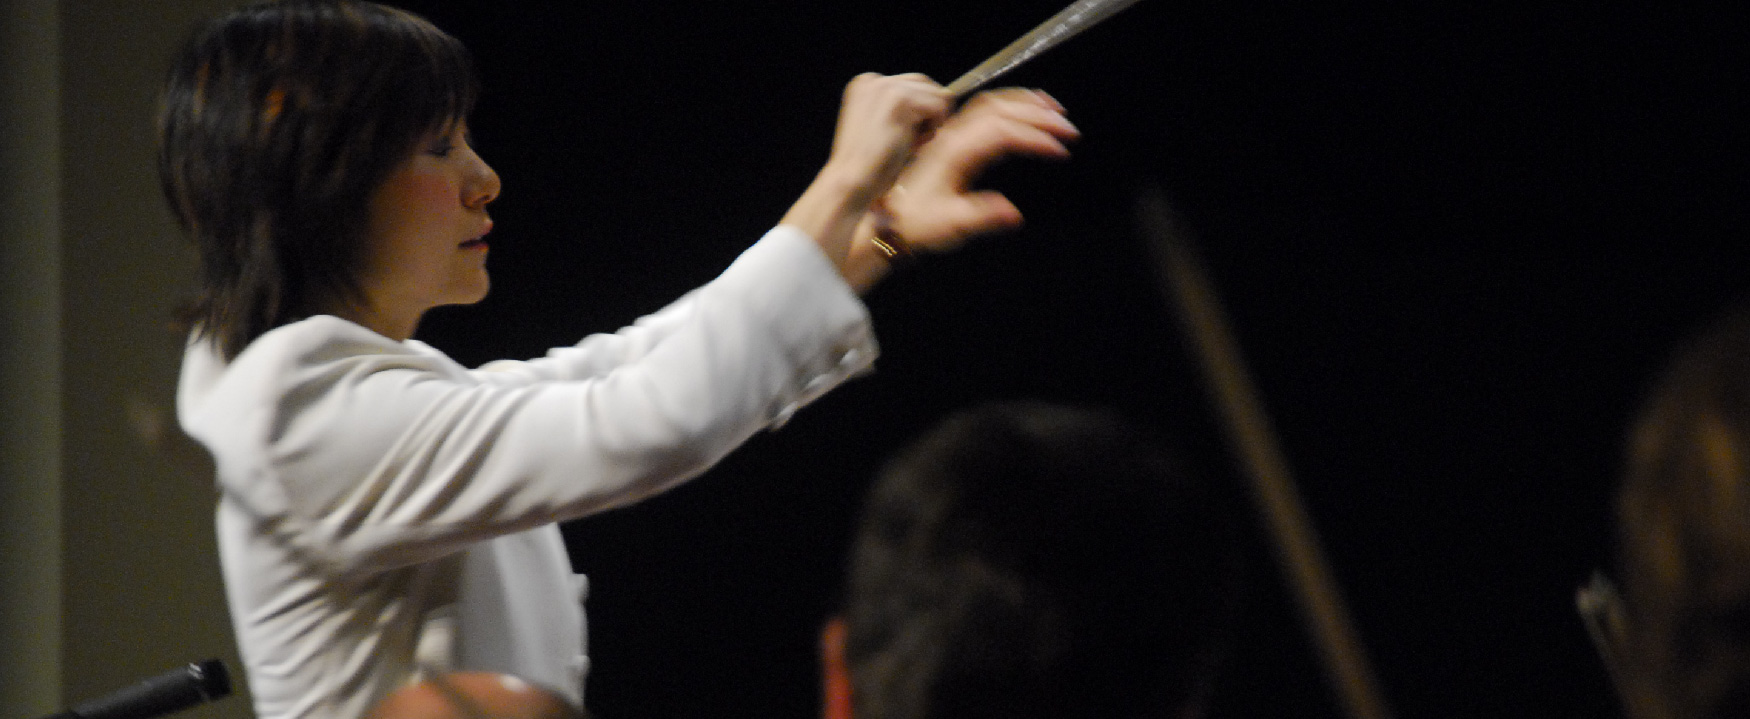 A photo shows the side view of a female orchestra conductor directing her orchestra.